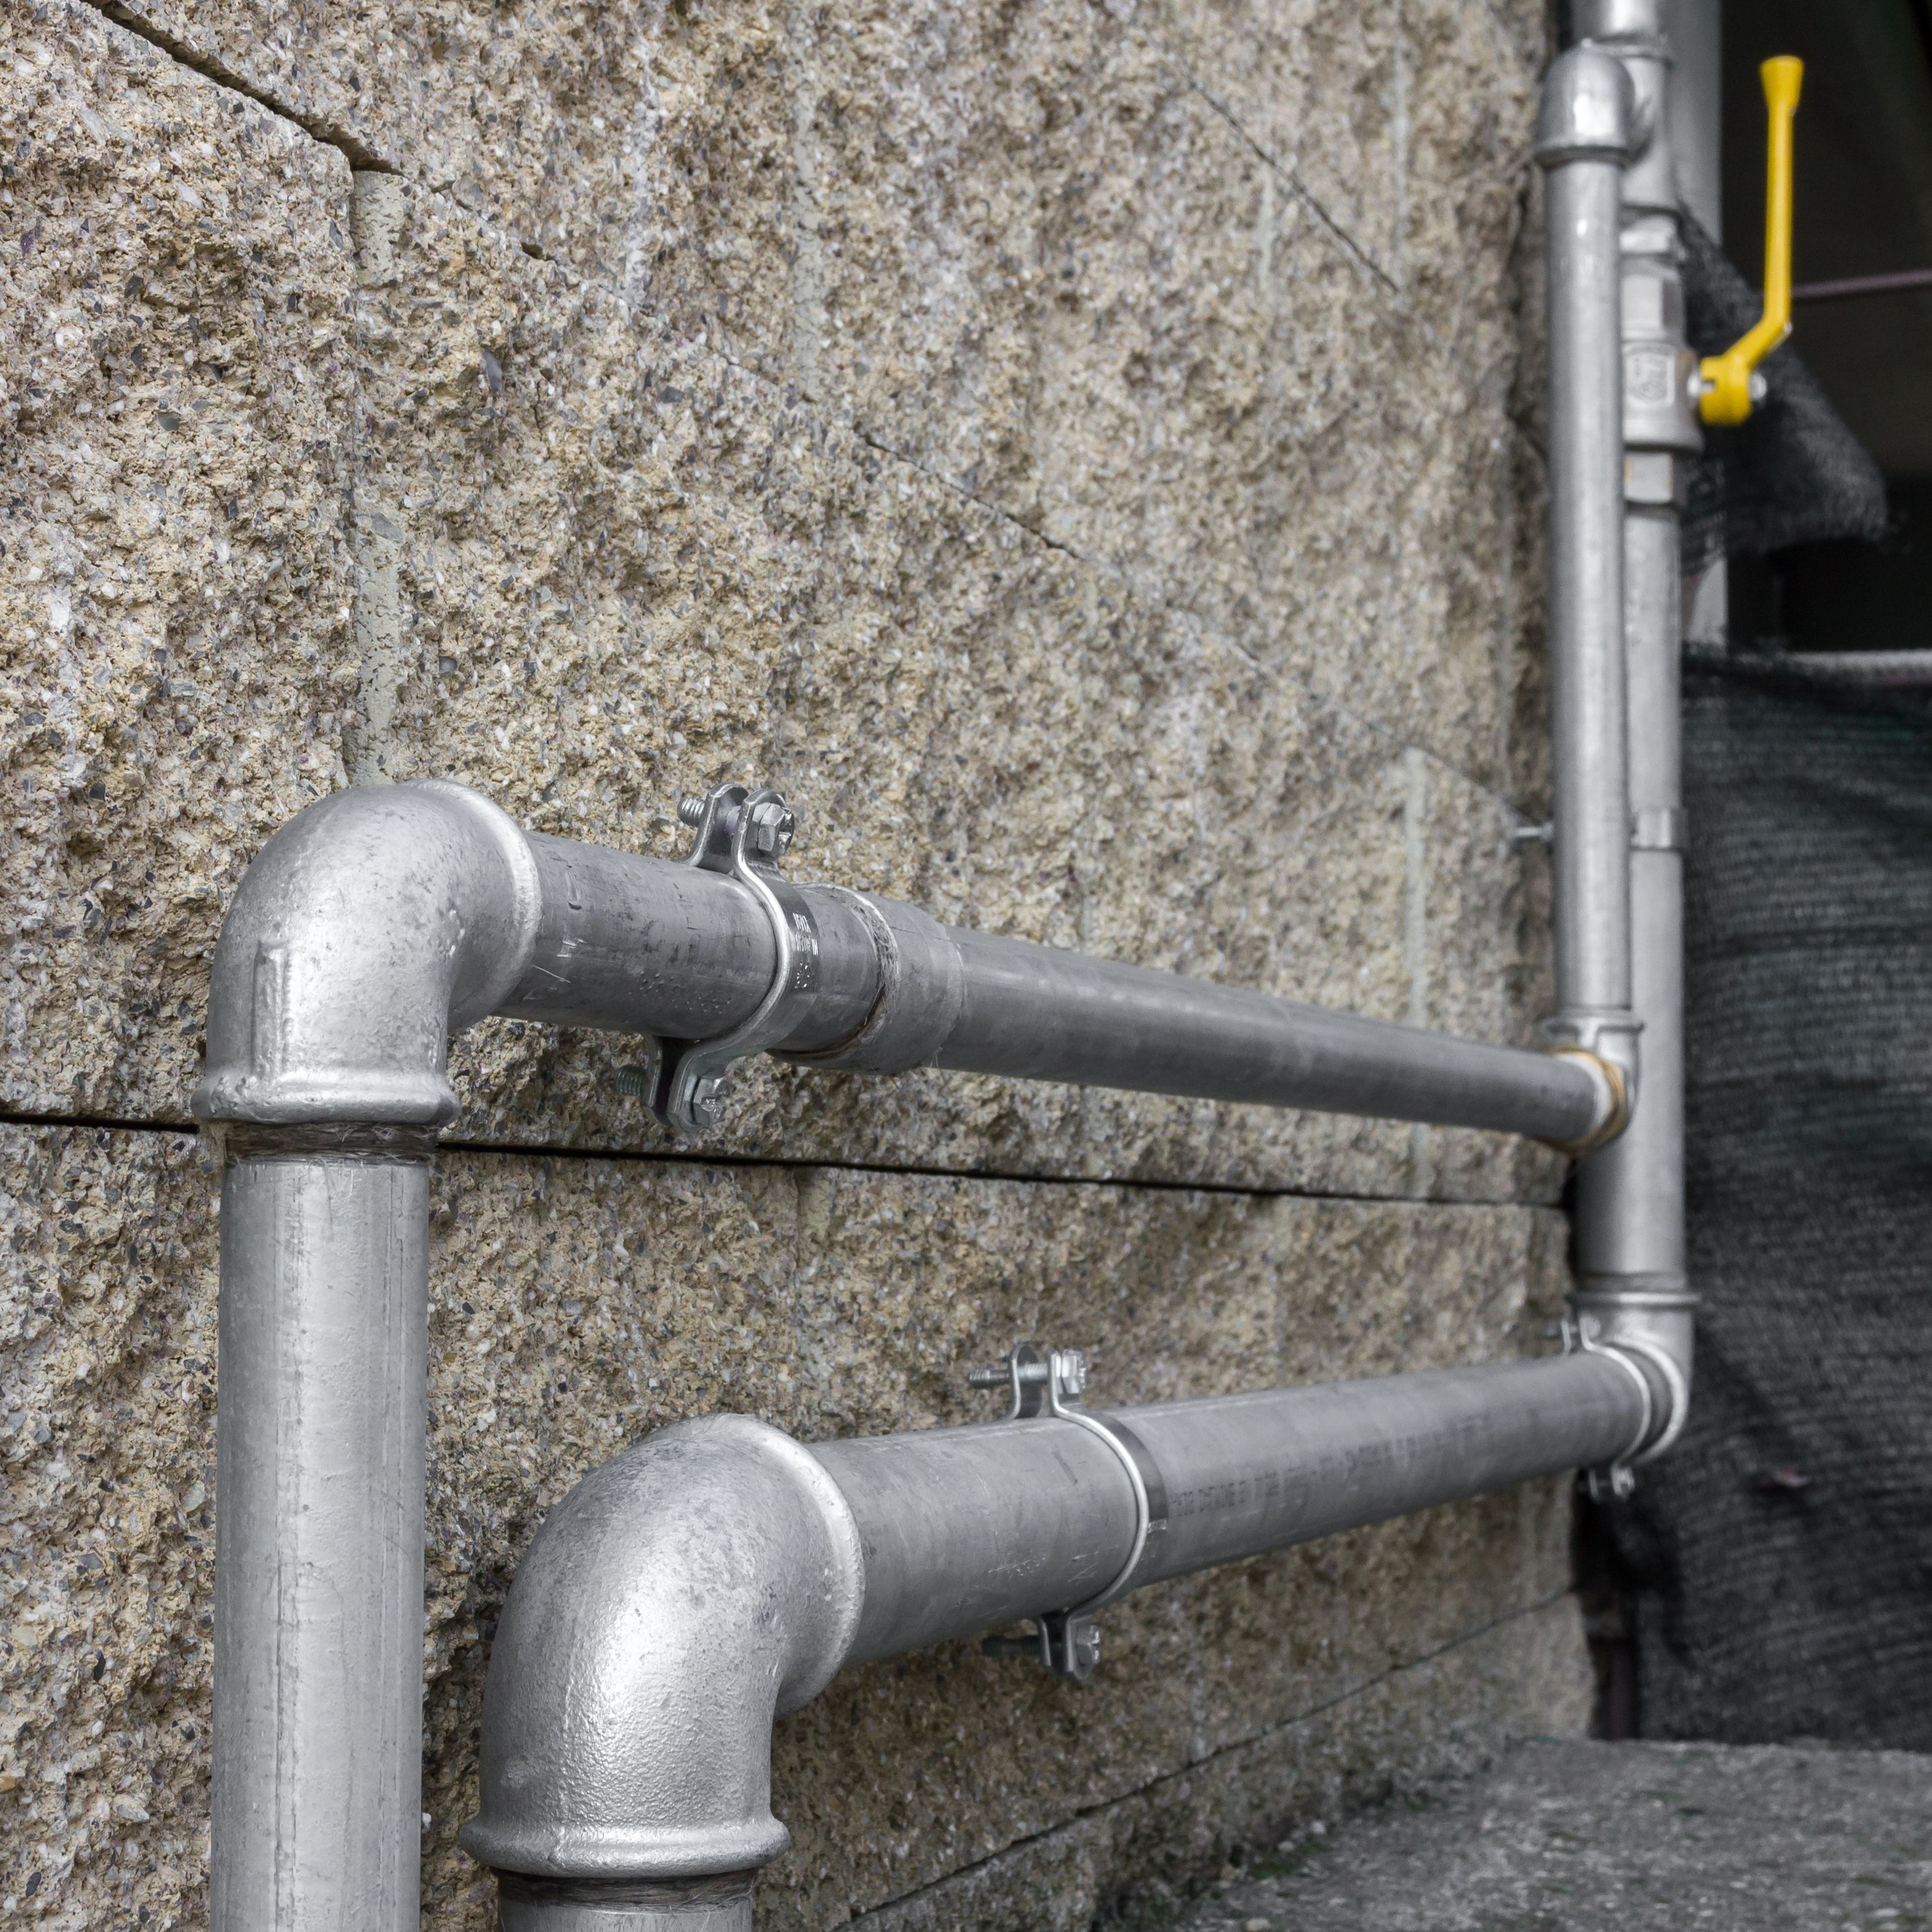 Pipes of an external heating system for gas distribution